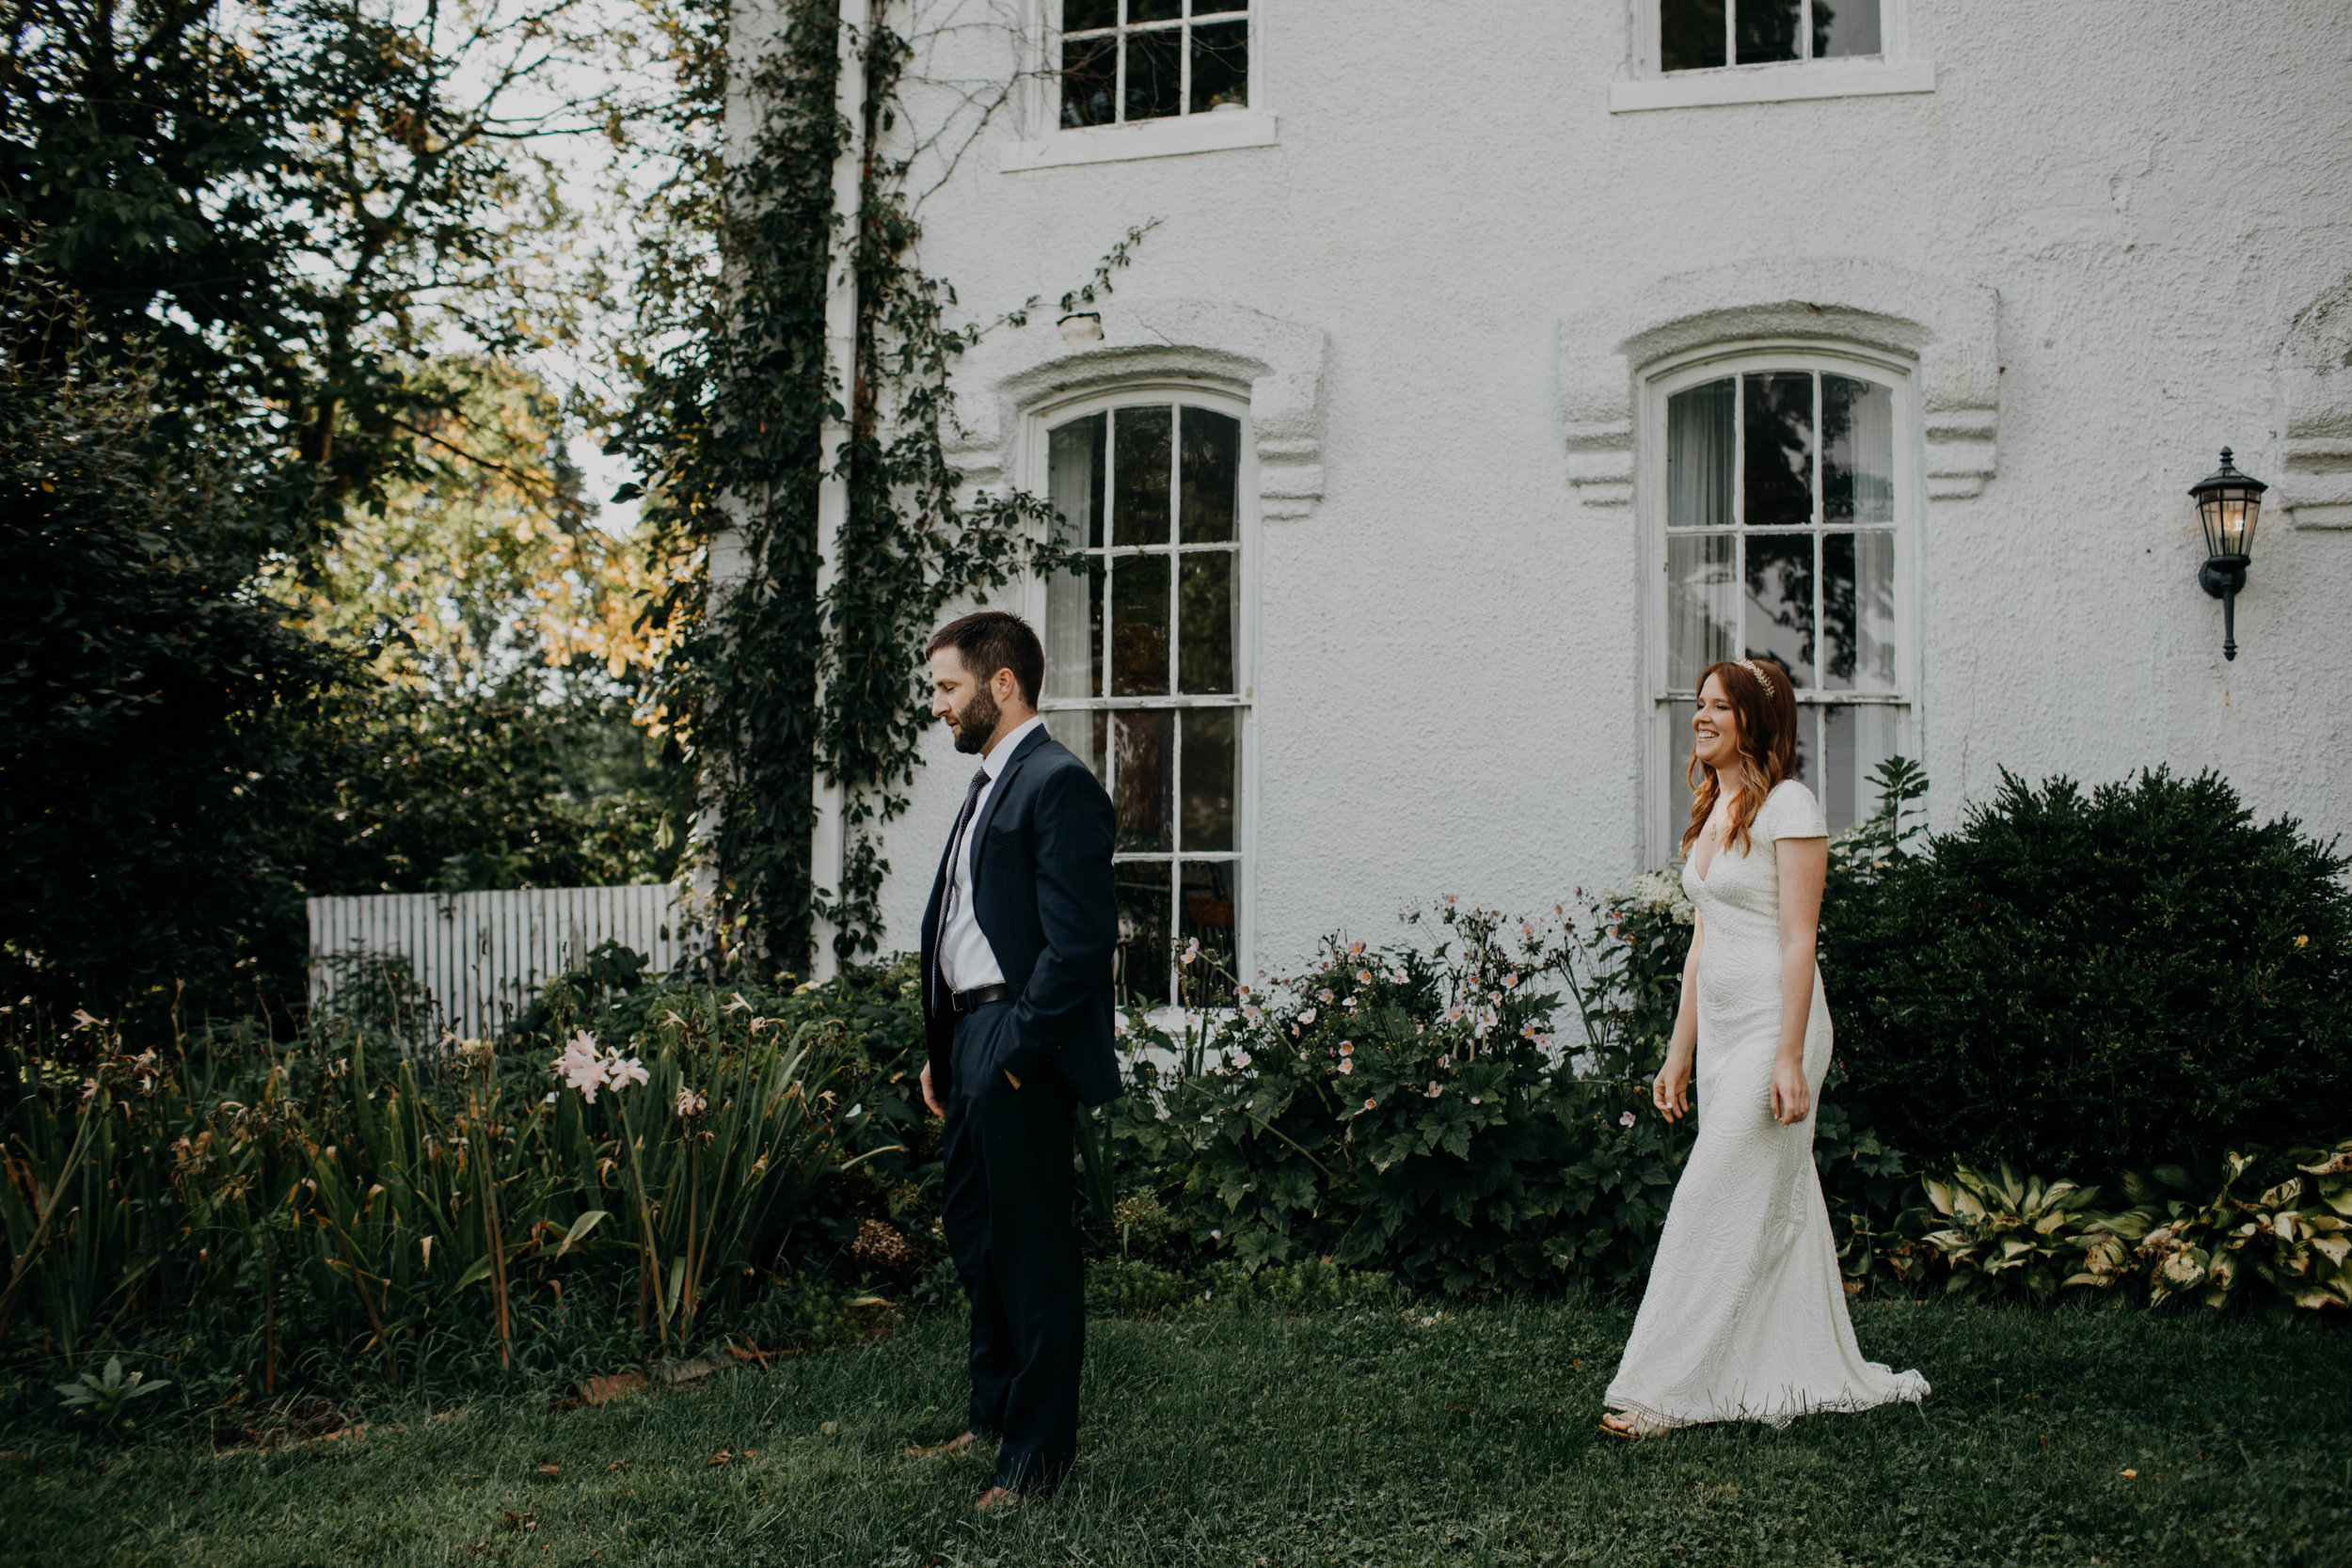 untraditional intimate bed and breakfast wedding orchard house bed and breakfast wedding granville ohio99.jpg